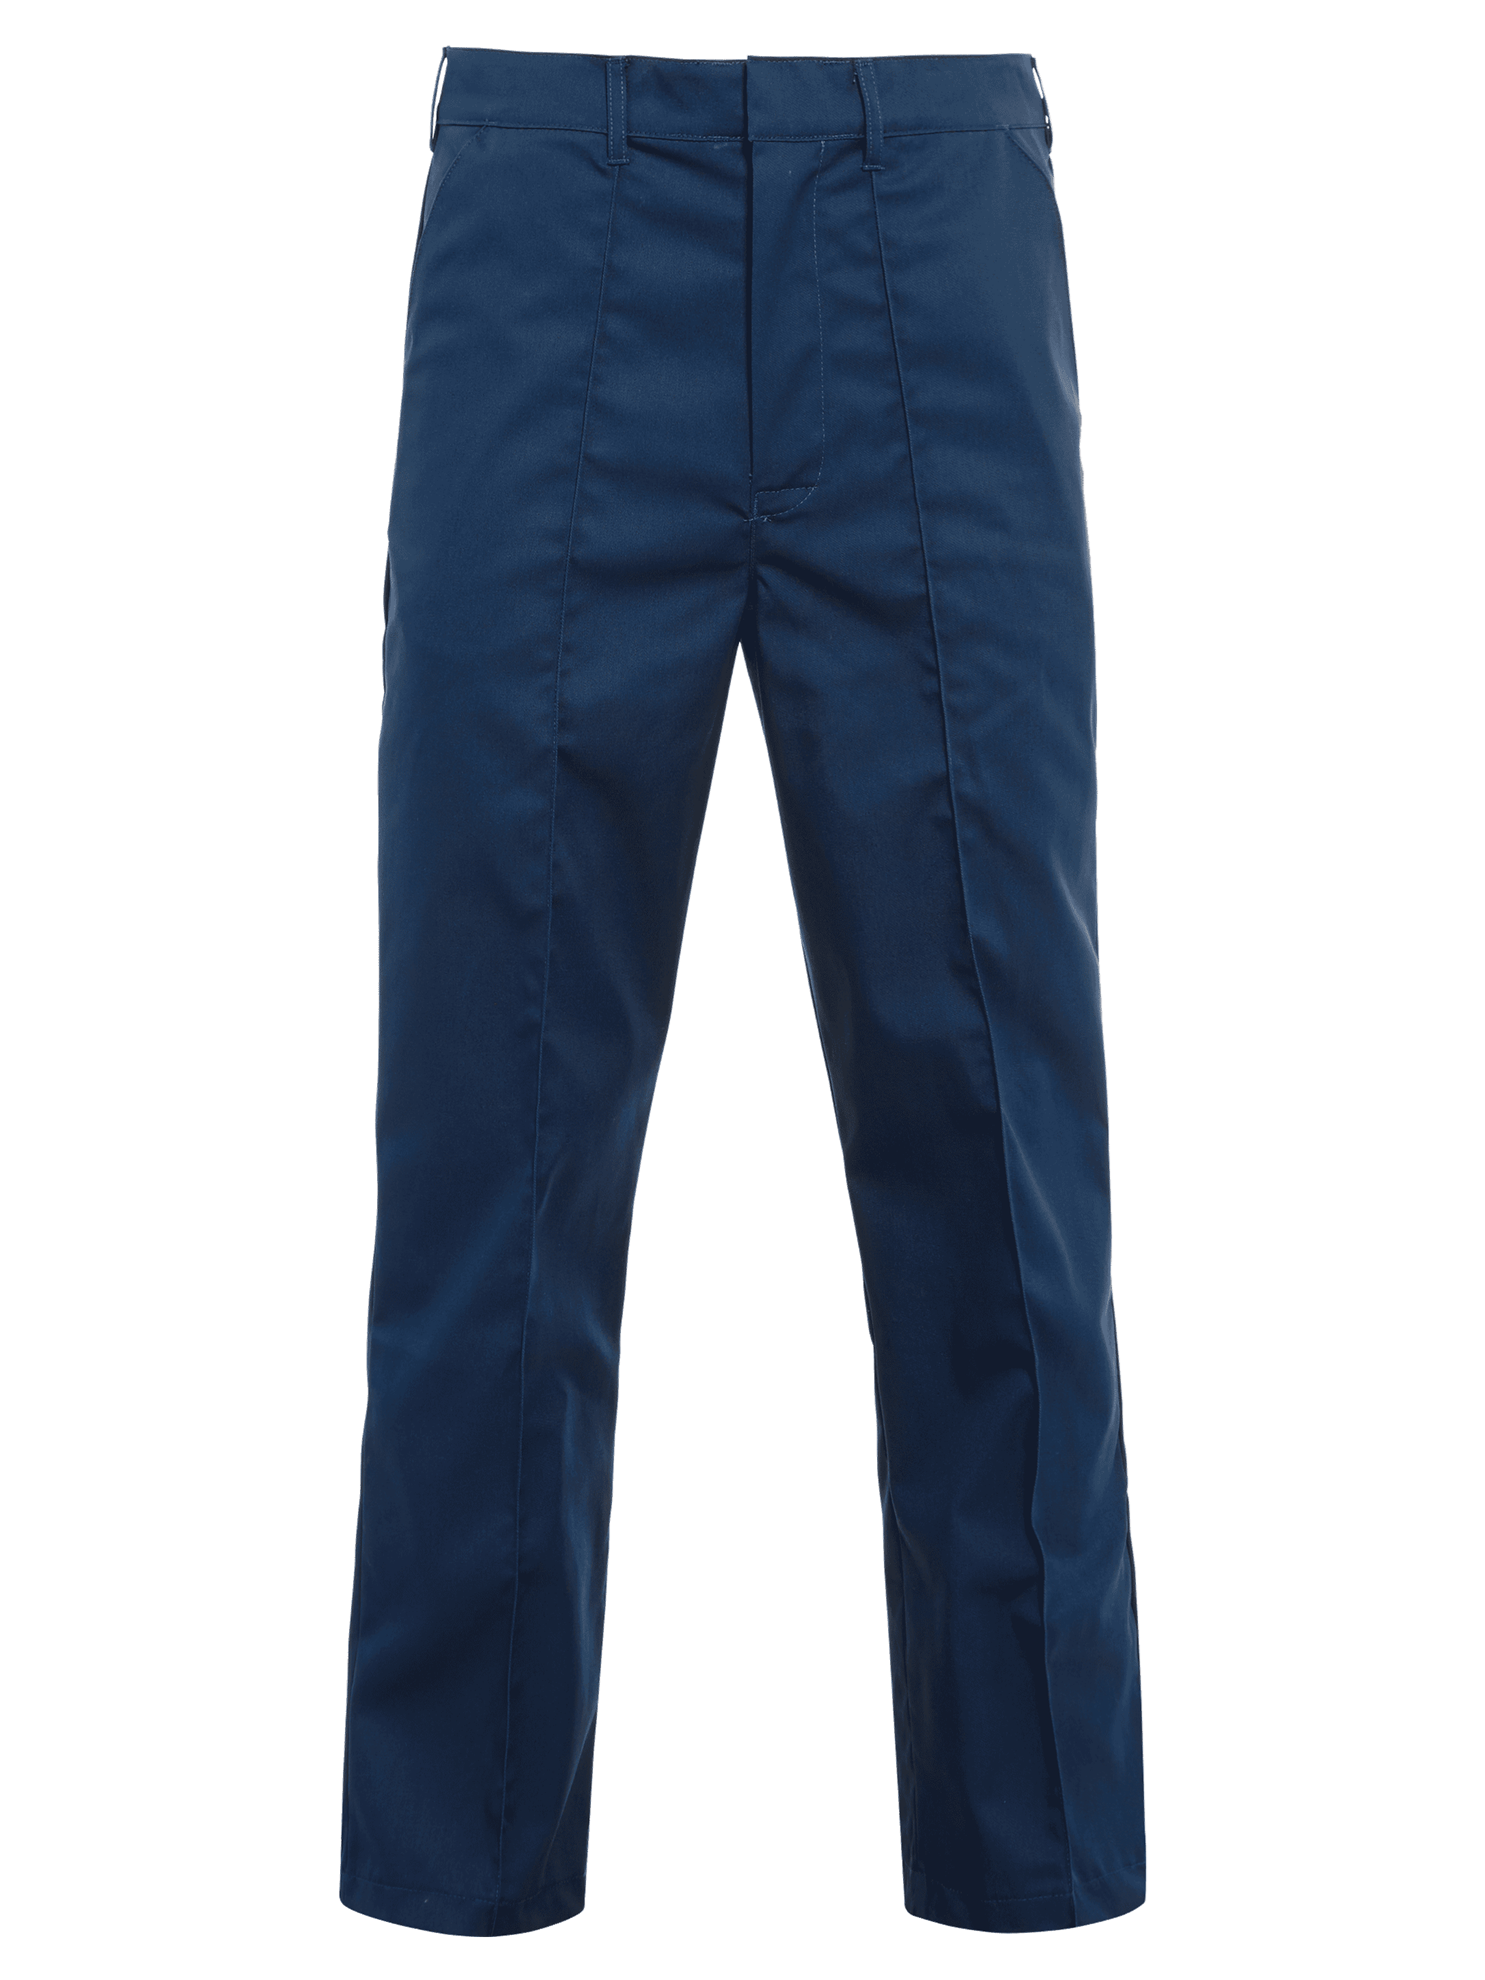 Picture of Trouser with Sewn-In Front Crease (245gsm) (Navy)